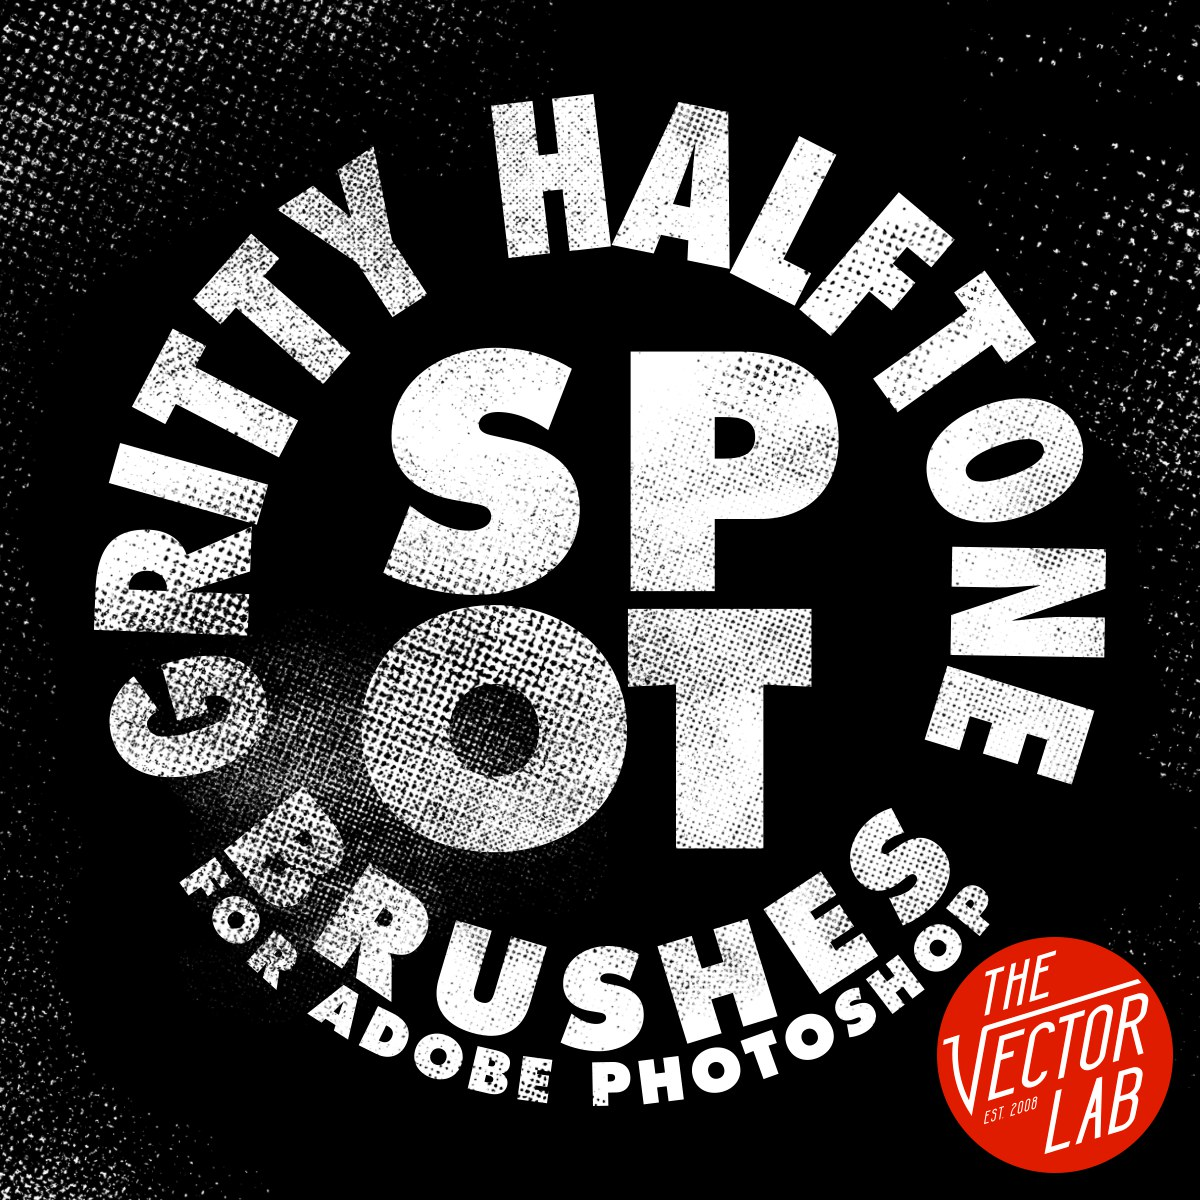 Gritty Halftone Spot Brushes for Photoshop